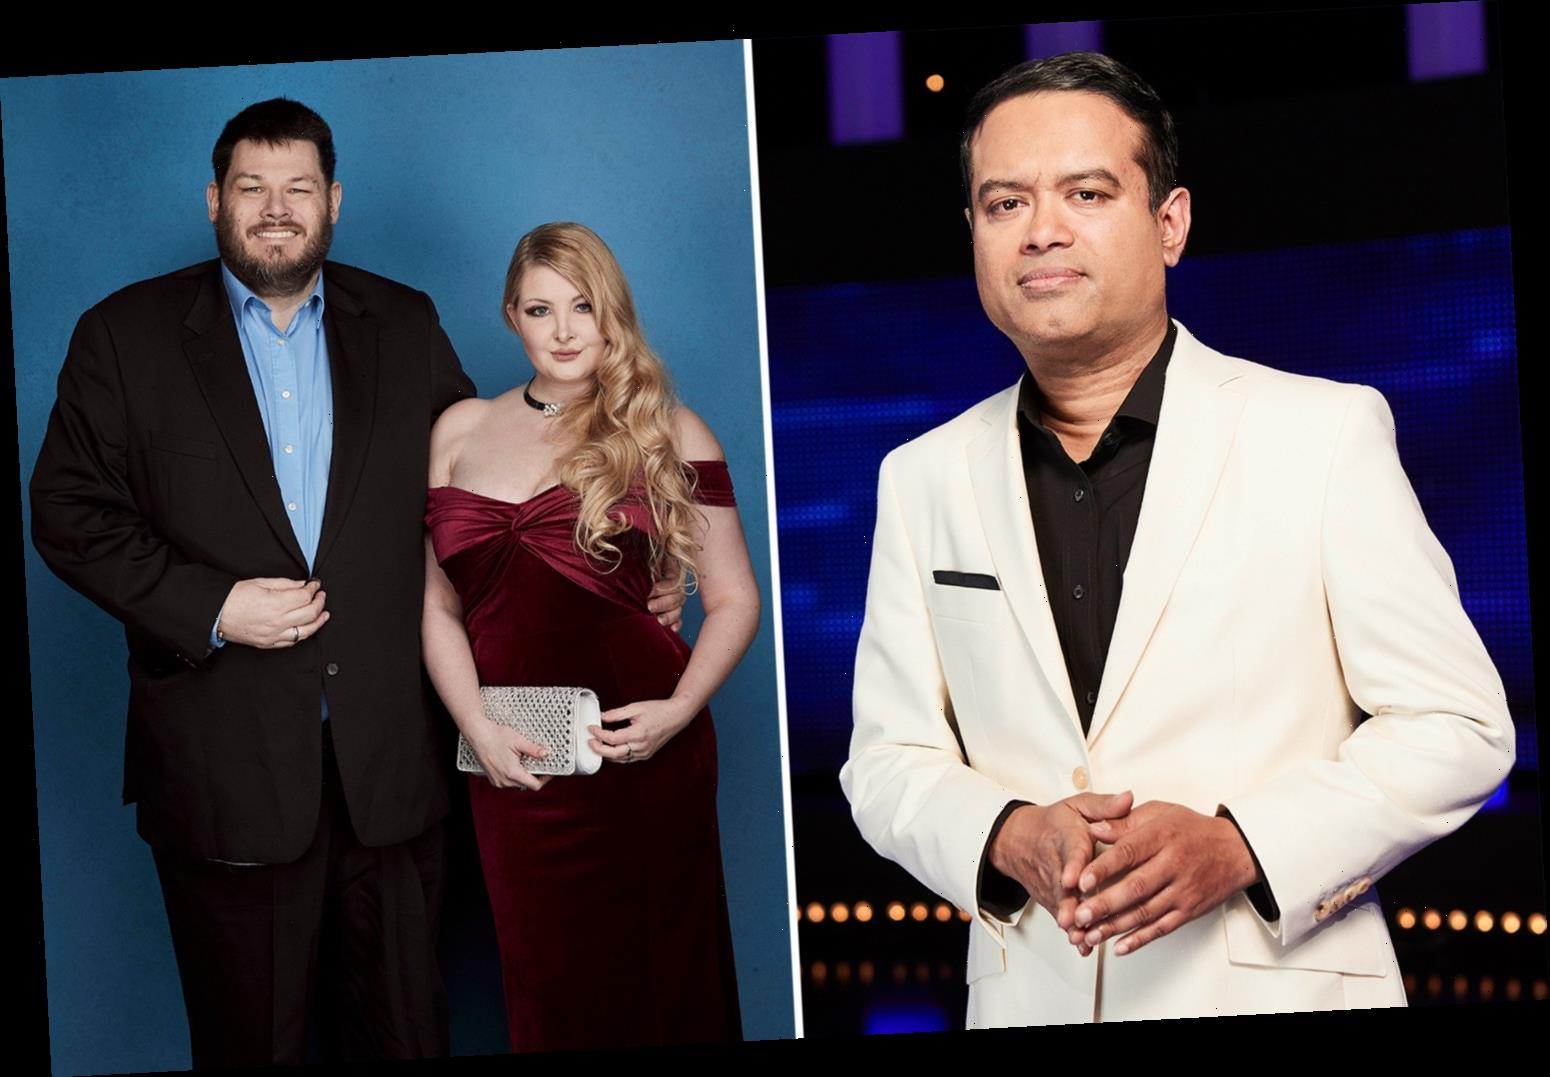 The Chase's Paul Sinha blasts Mark Labbett for 'f***ing his cousin' and branded ITV bosses racist for calling Shaun Wallace The Dark Destroyer – The Sun